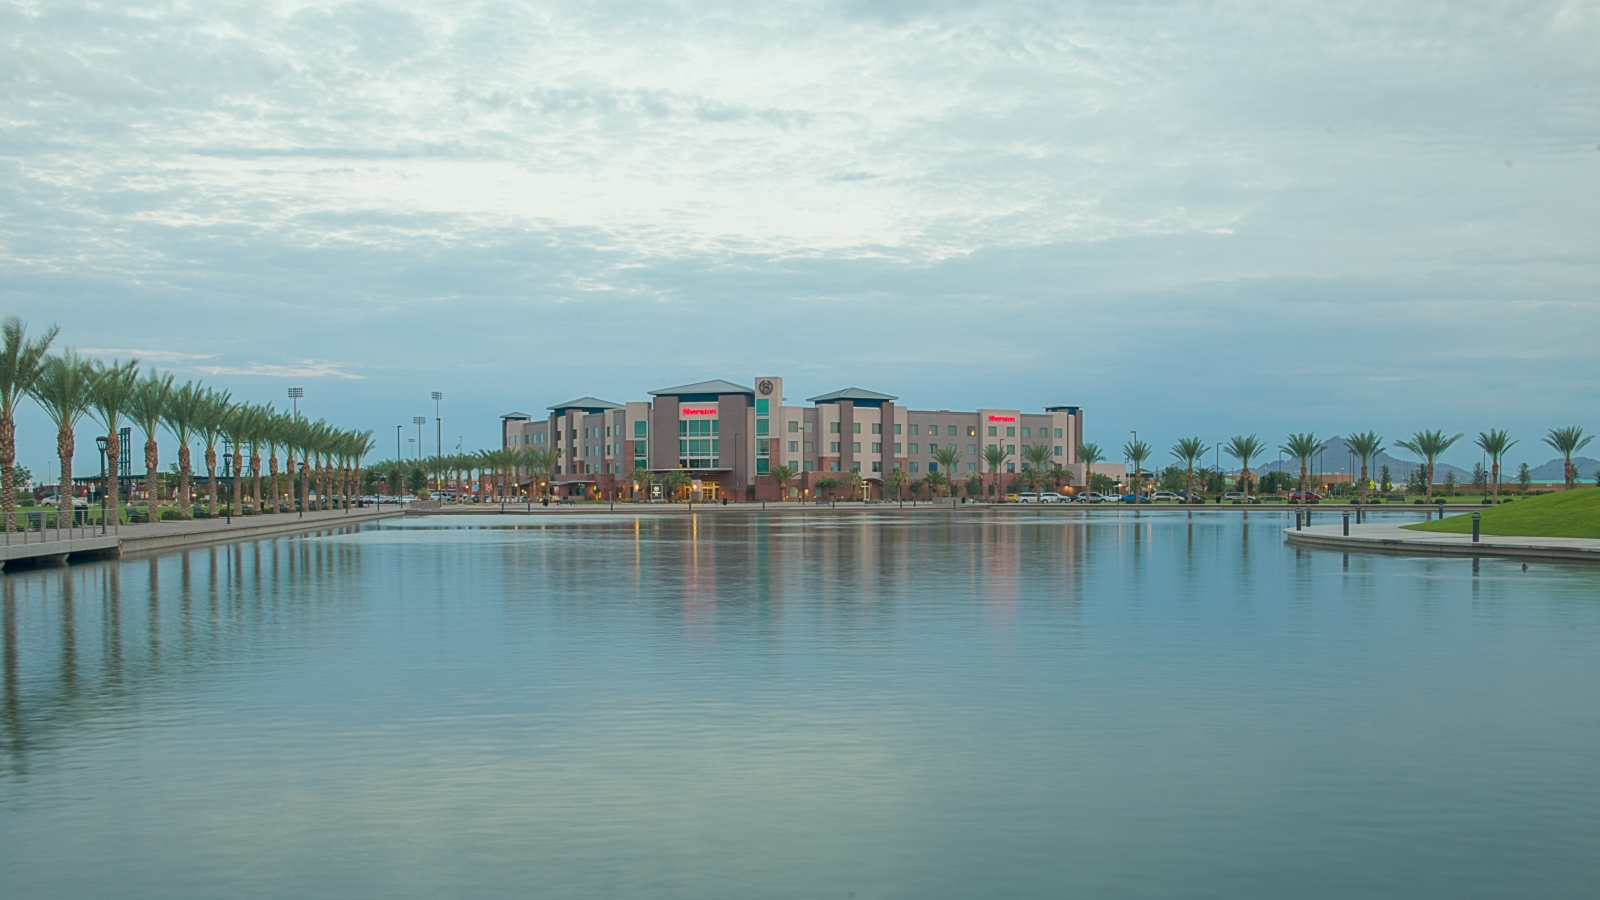 Wedding Venues in Phoenix - Riverview Lake